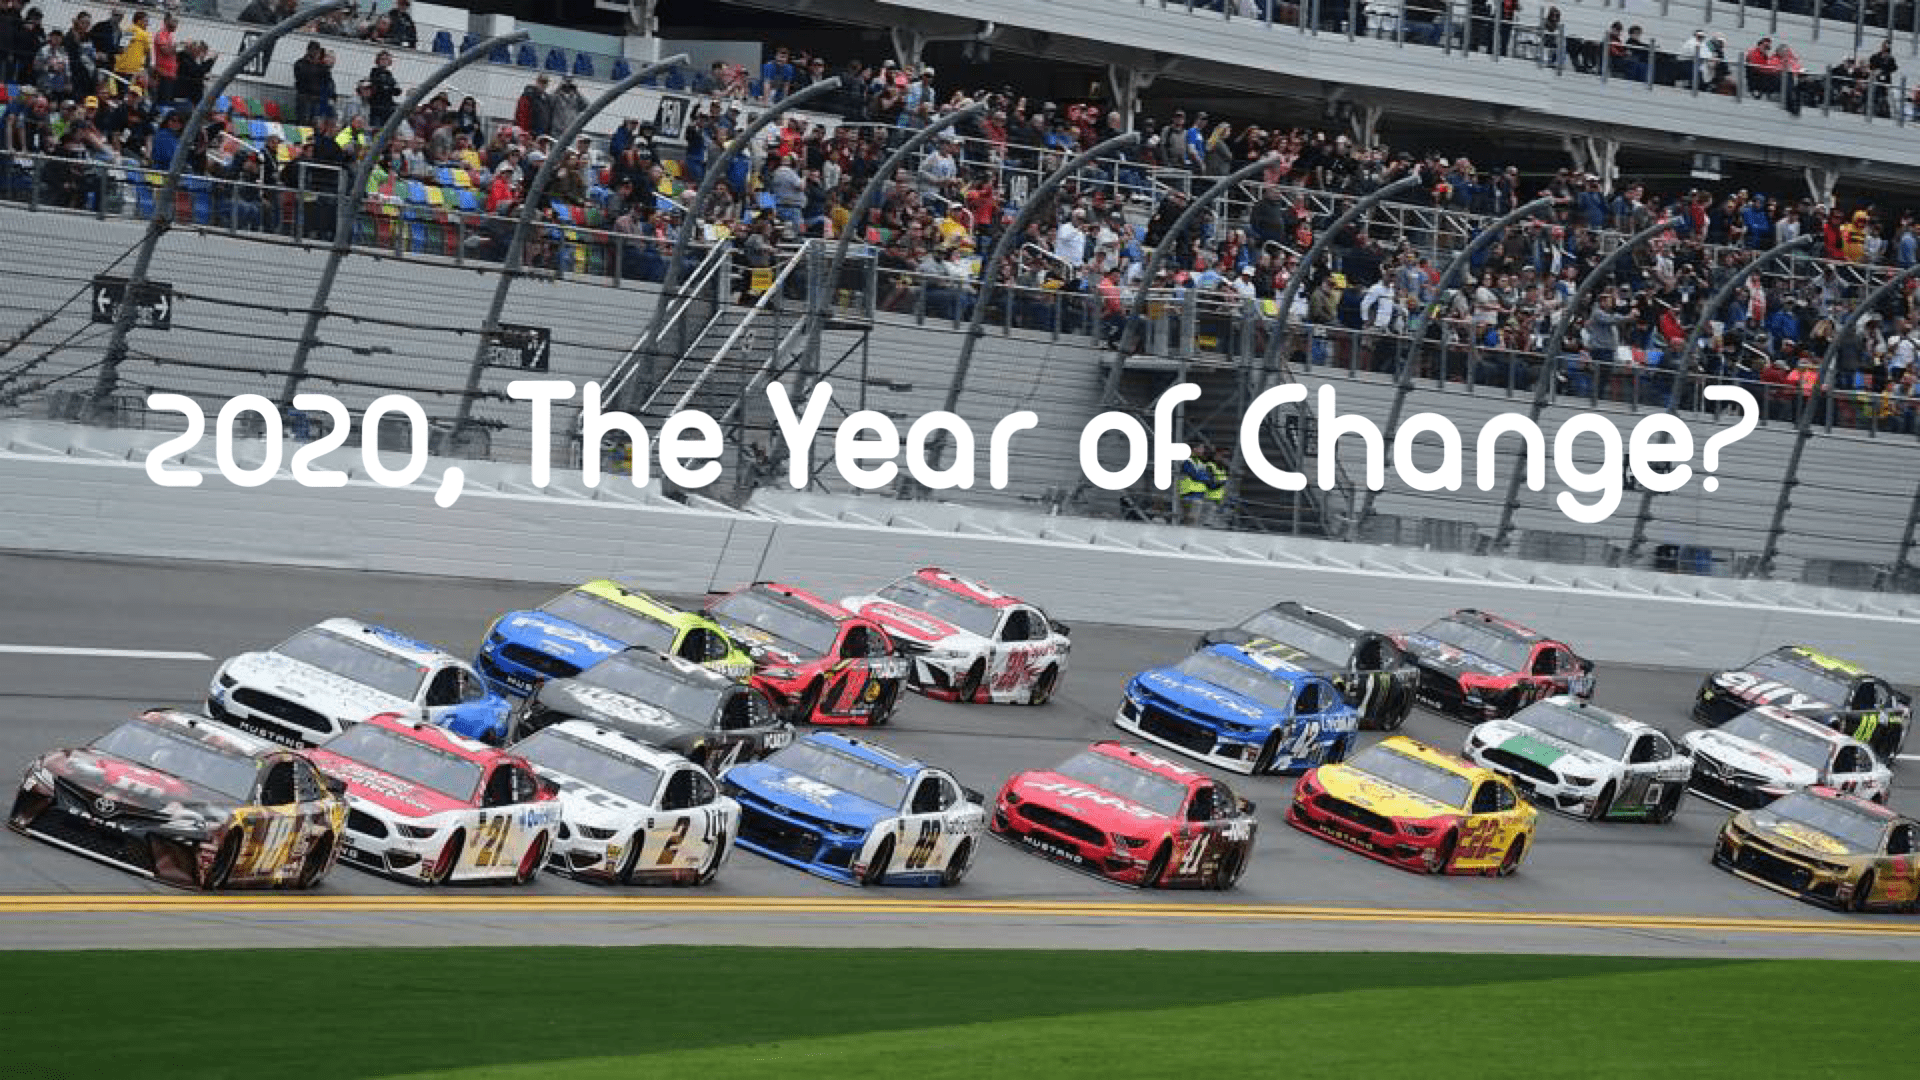 NASCAR 2020: The Year of Change